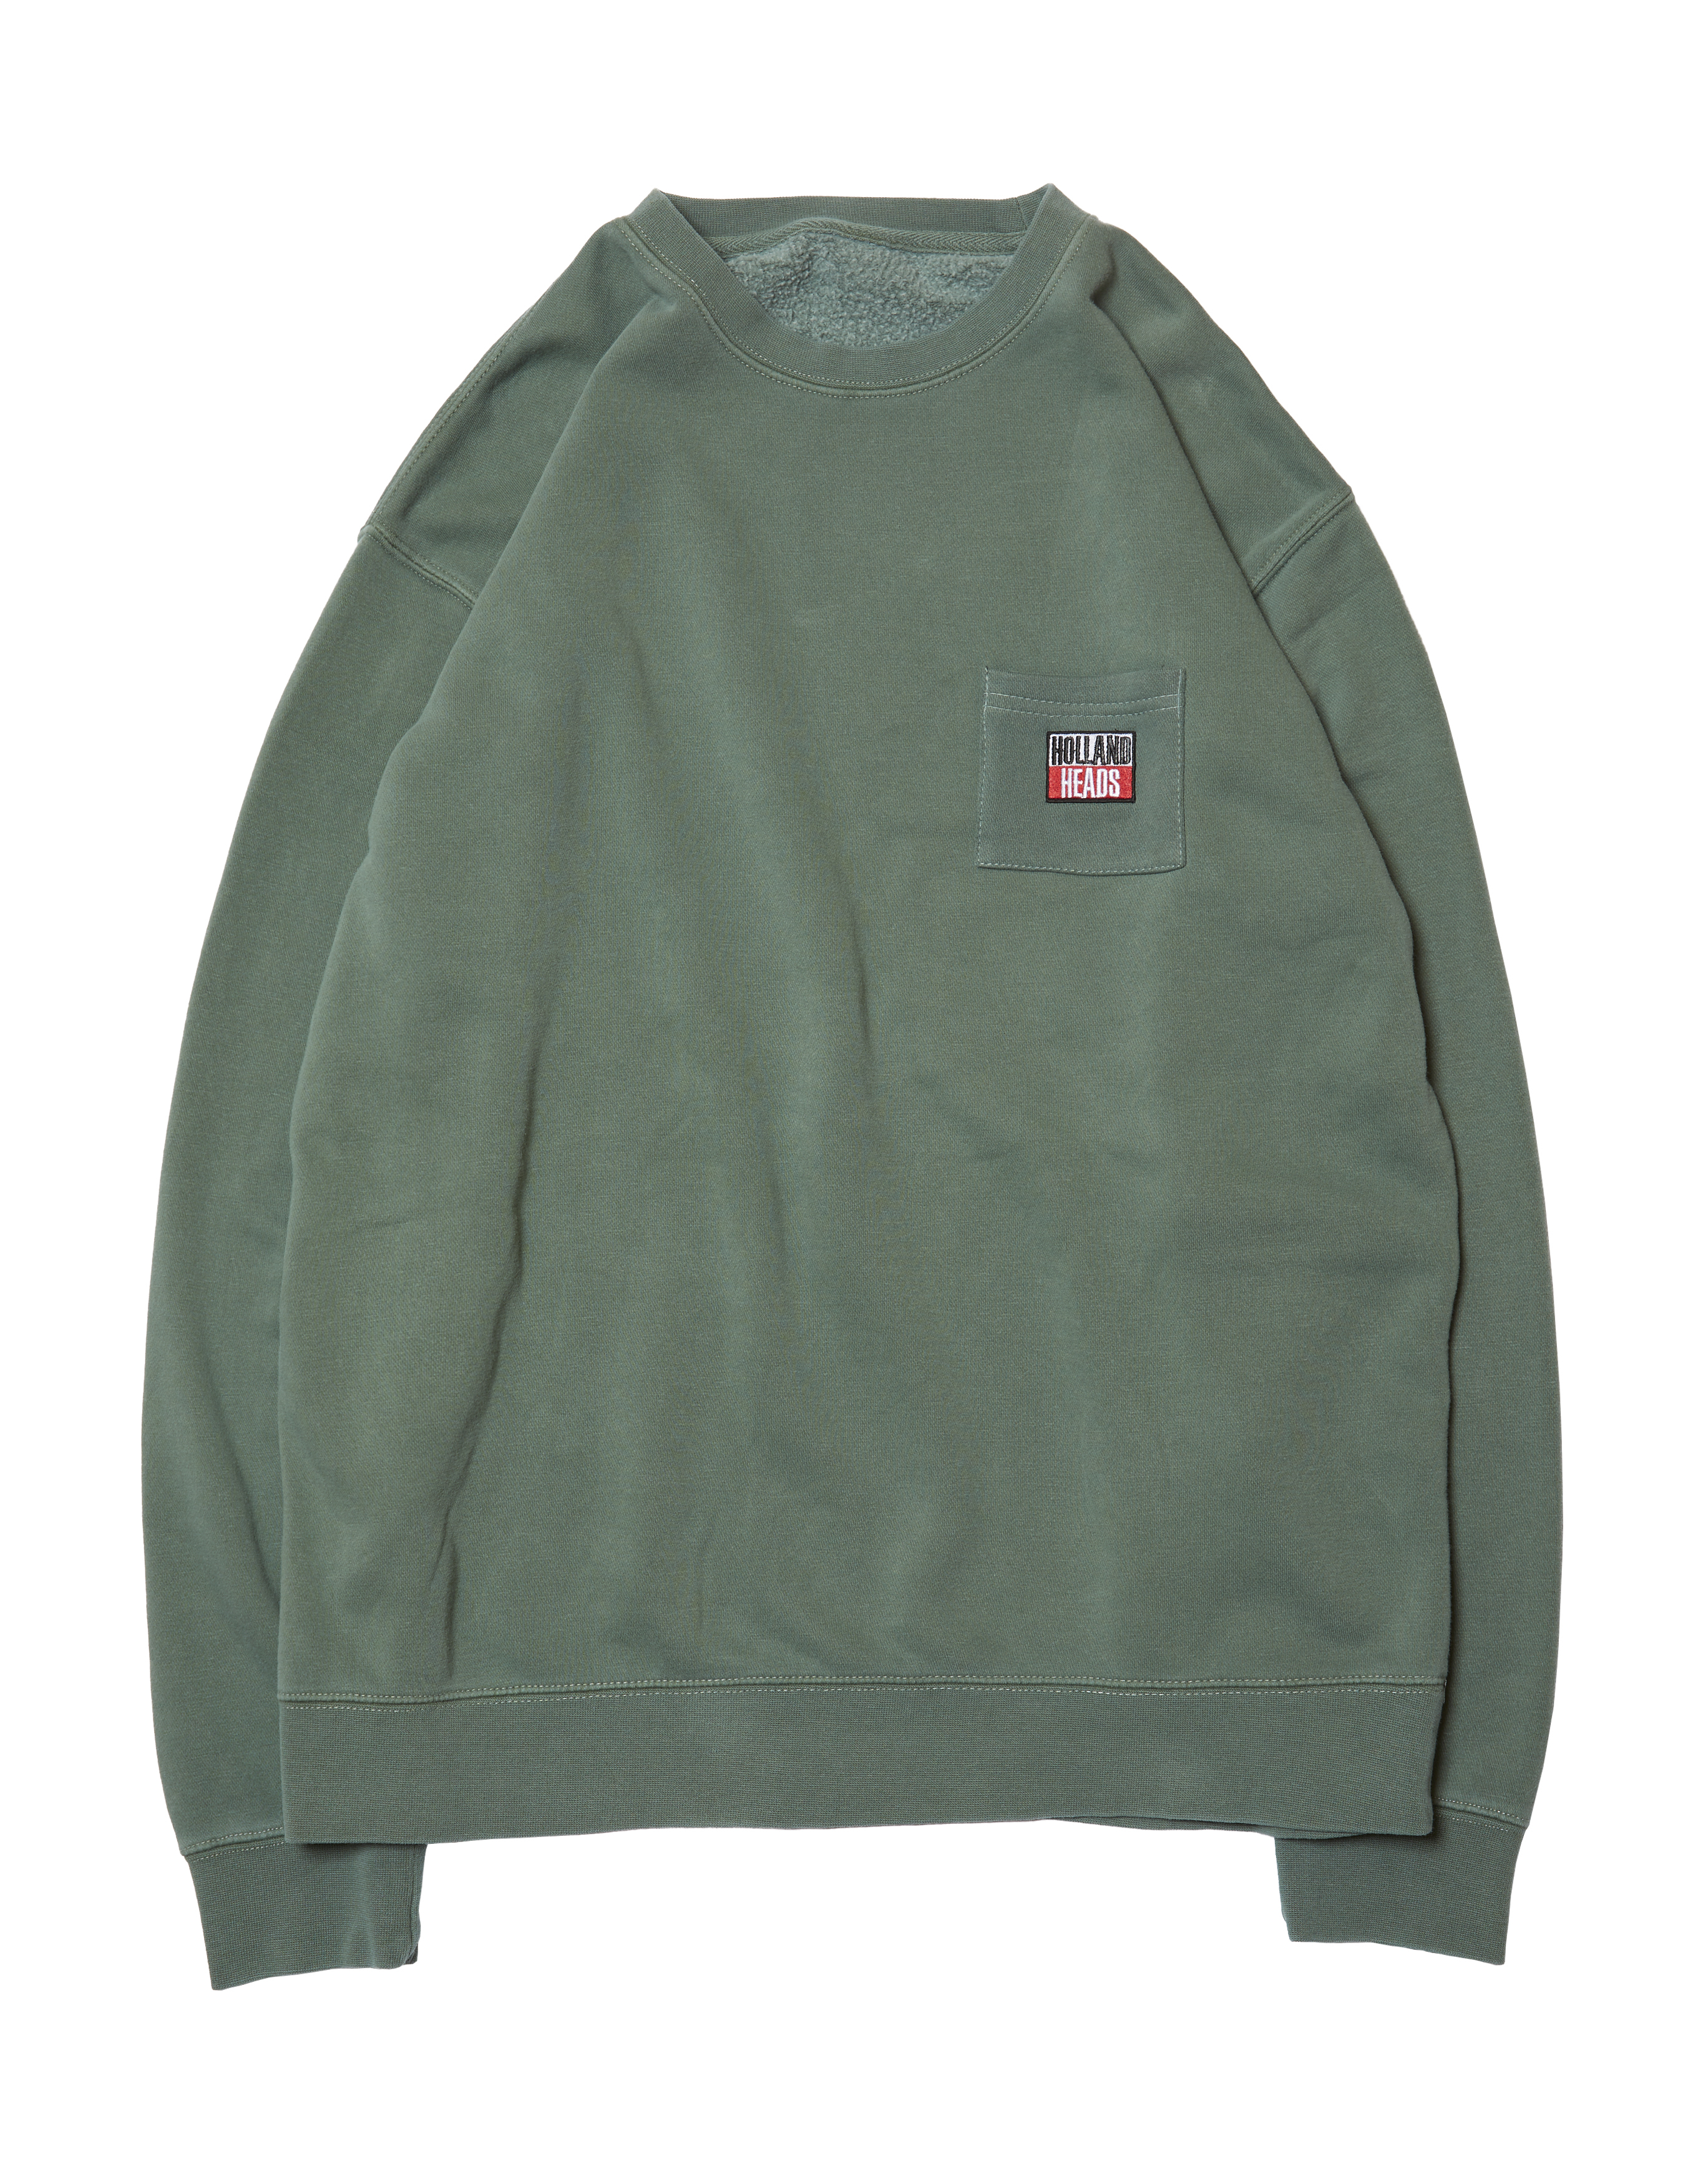 【HOLE AND HOLLAND】HOLLAND HEAD CREW(PIGMENT GREEN)